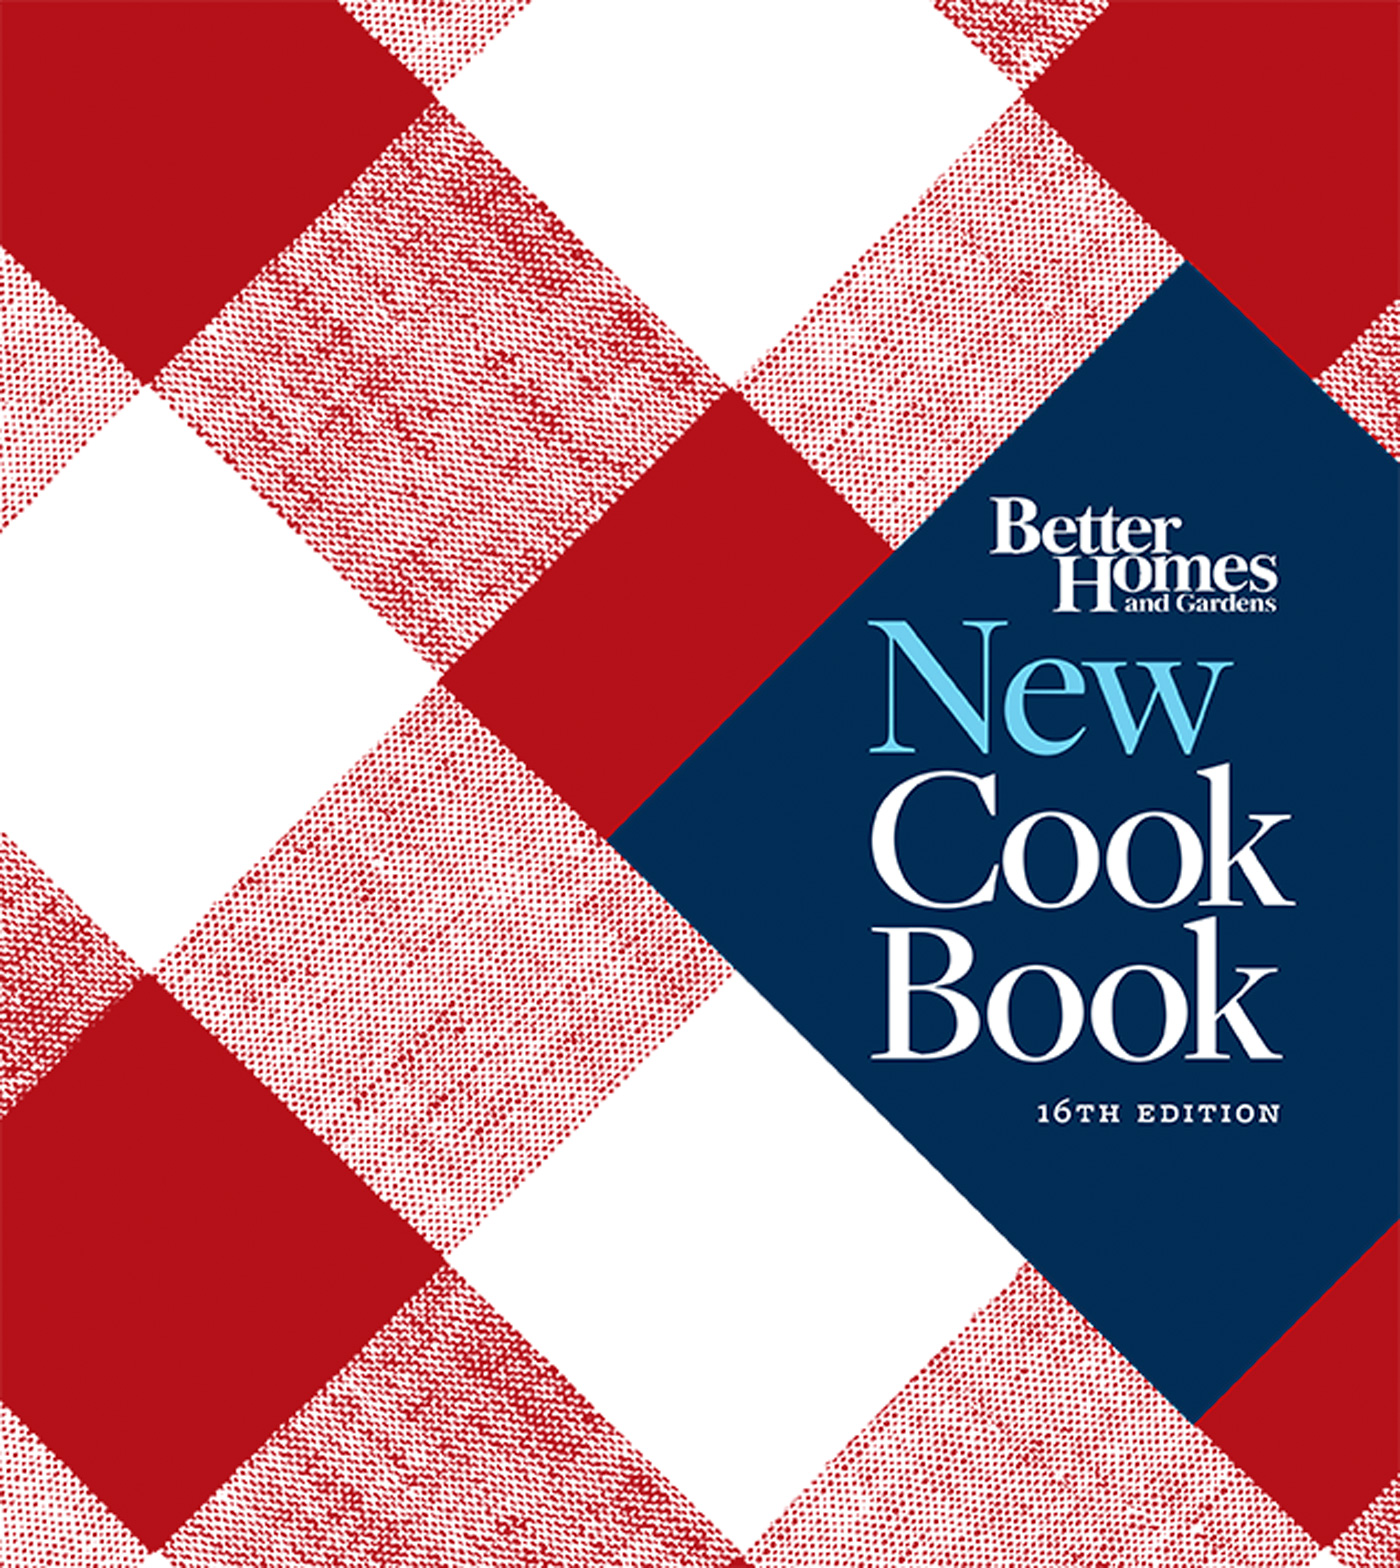 Better Homes and Gardens New Cook Book, Sixteenth Edition-9780544307070